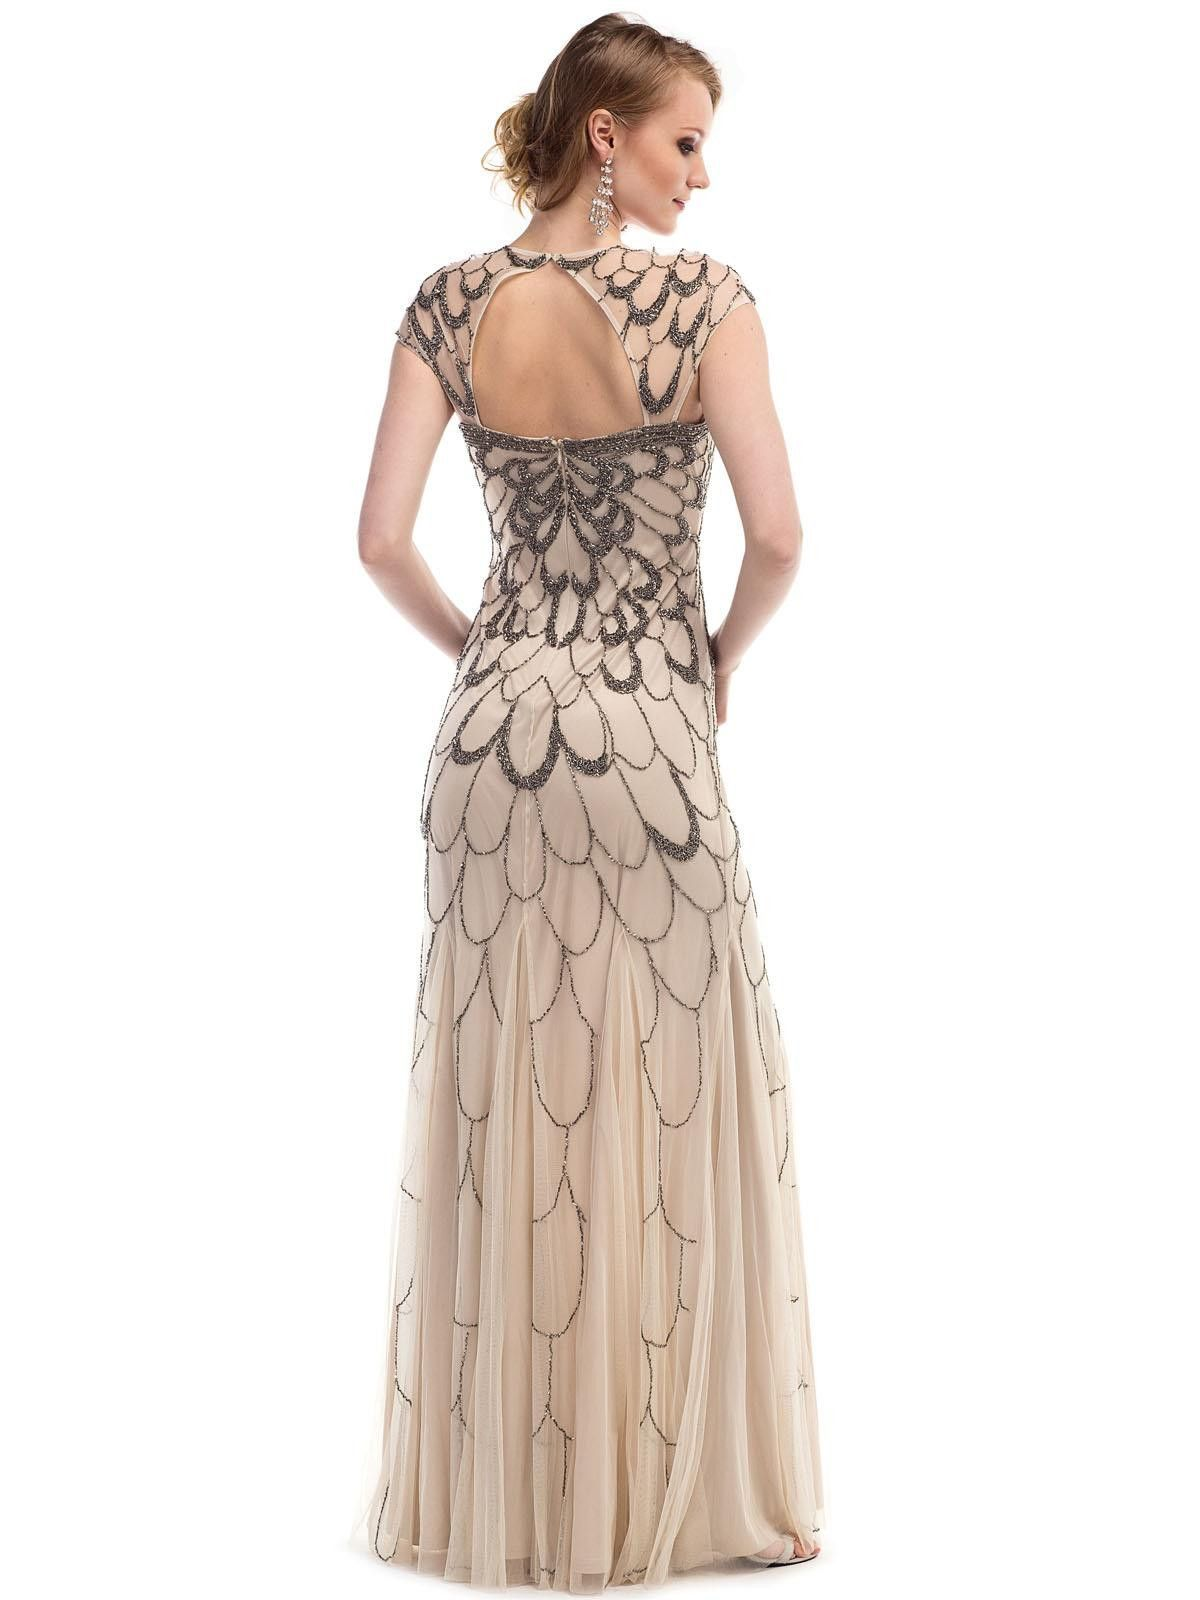 GLOW G263 Beaded Flapper or Great Gatsby Style Prom Dress Evening ...